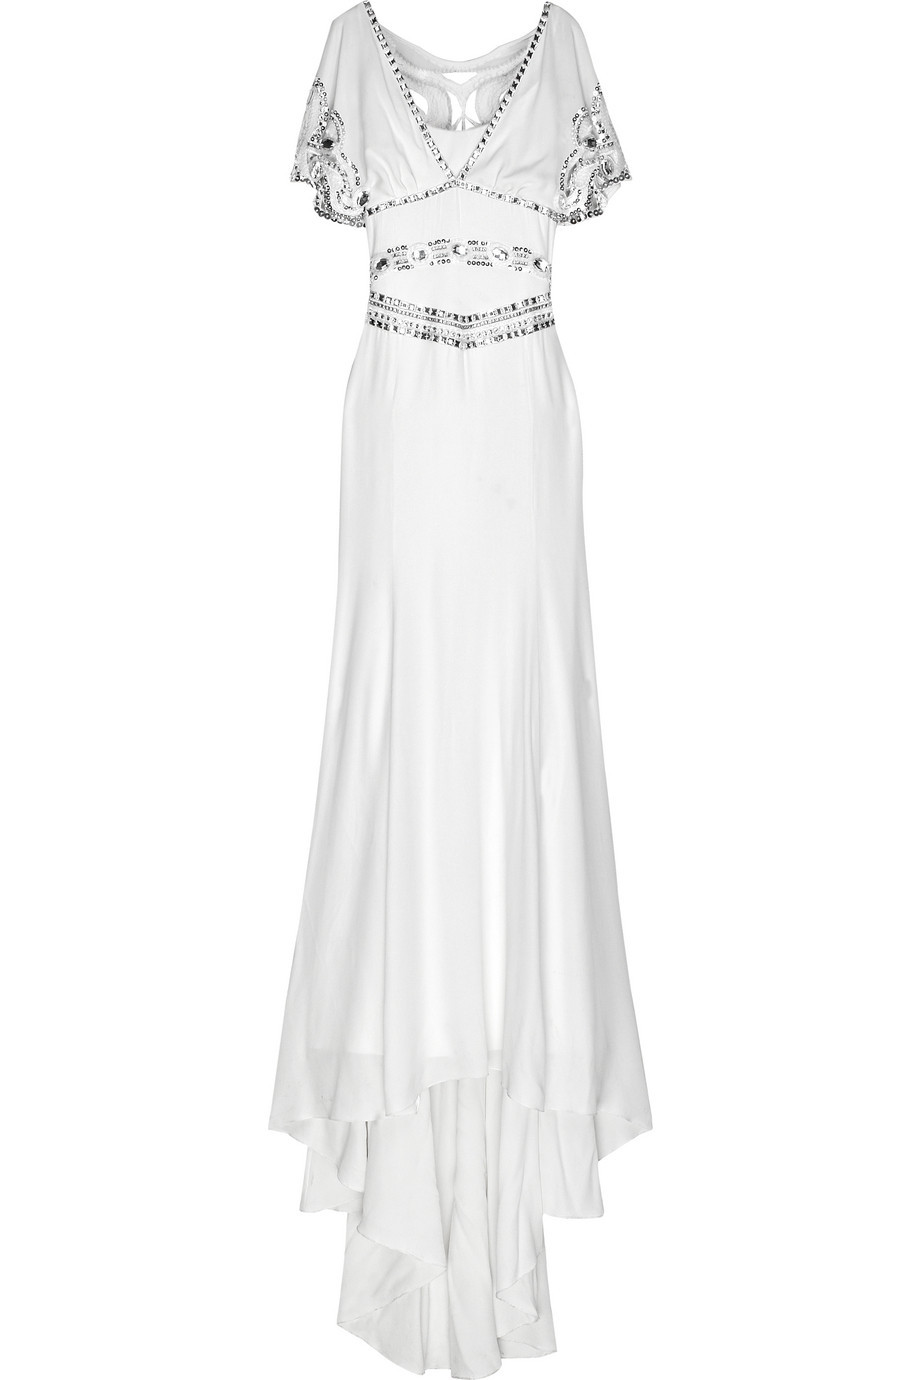 Vintage-inspired-wedding-dress-beading-with-sleeves-temperley-london.full